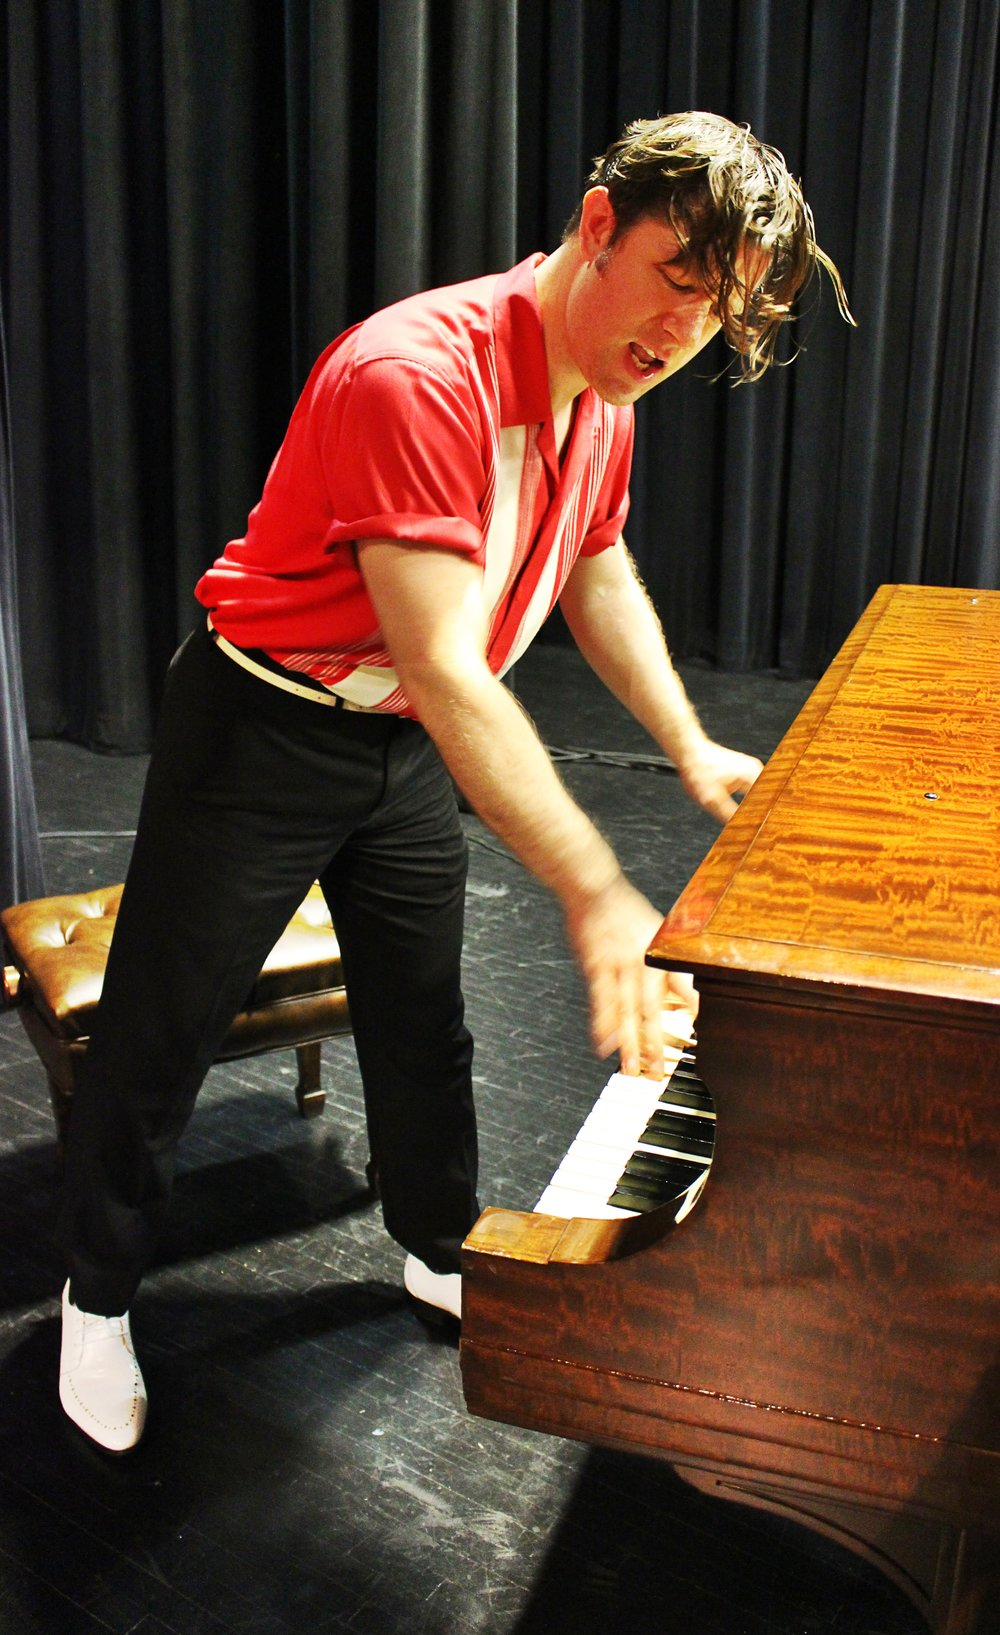 Blair Carman as Jerry Lee Lewis 1.jpg